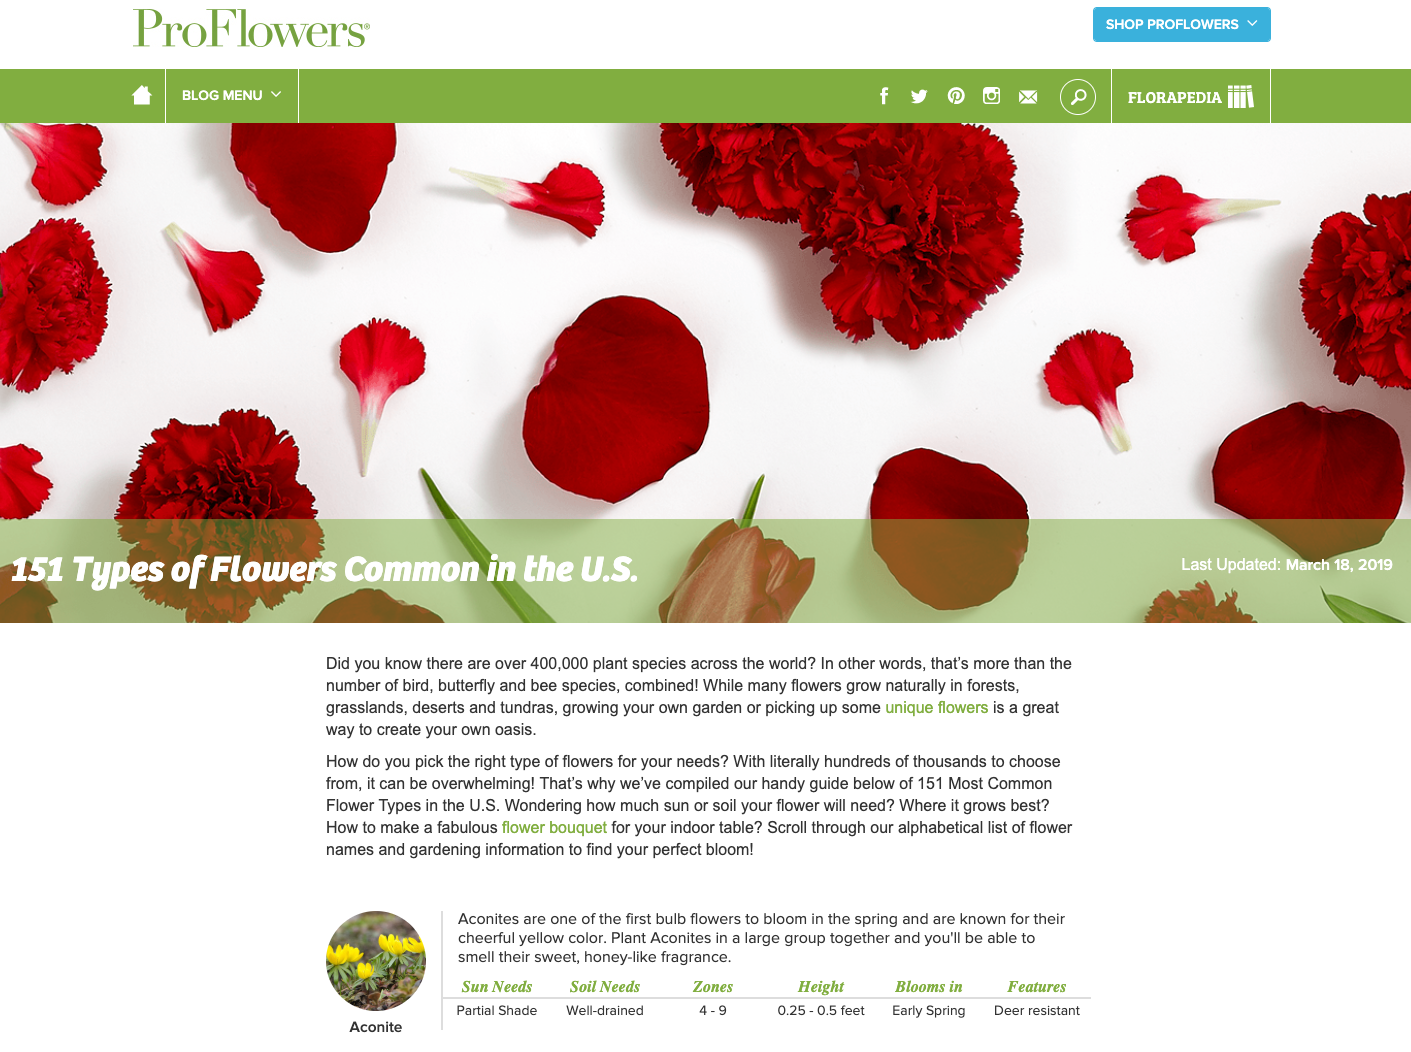 proflowers example